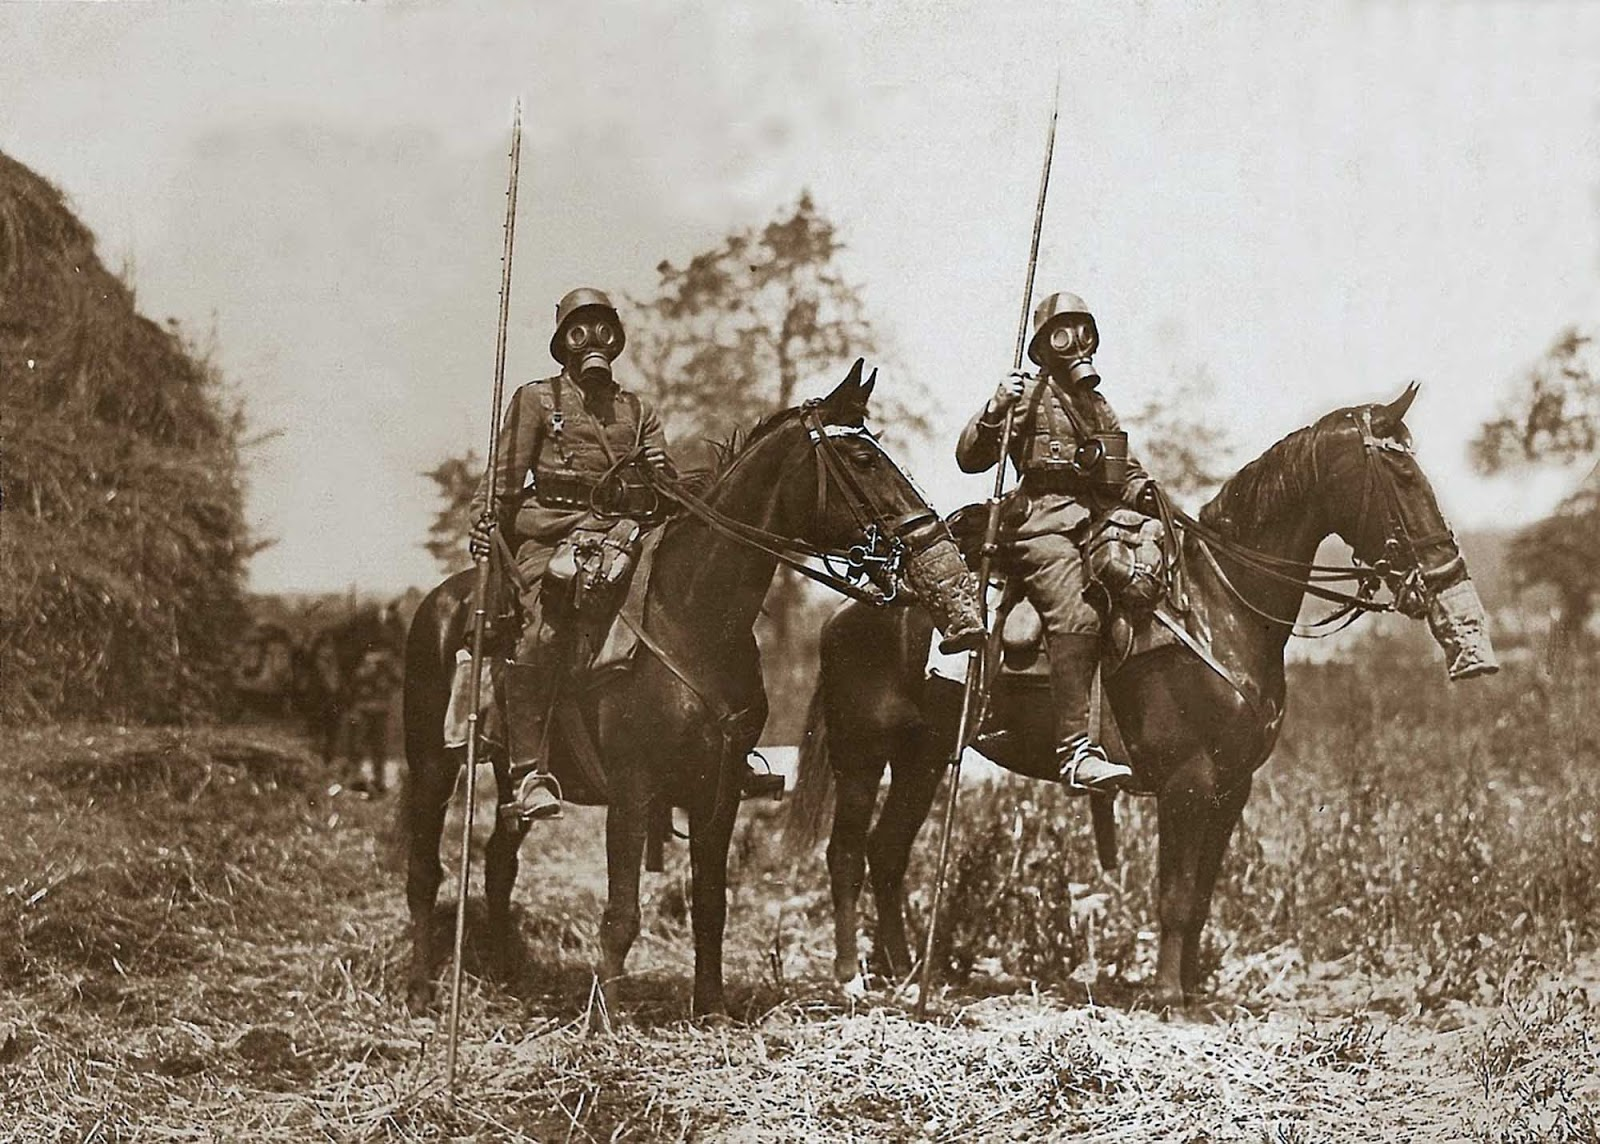 On the Eastern Front, mounted cavalry still had a role and lances saw limited use by the Russian, German and Austrian armies.